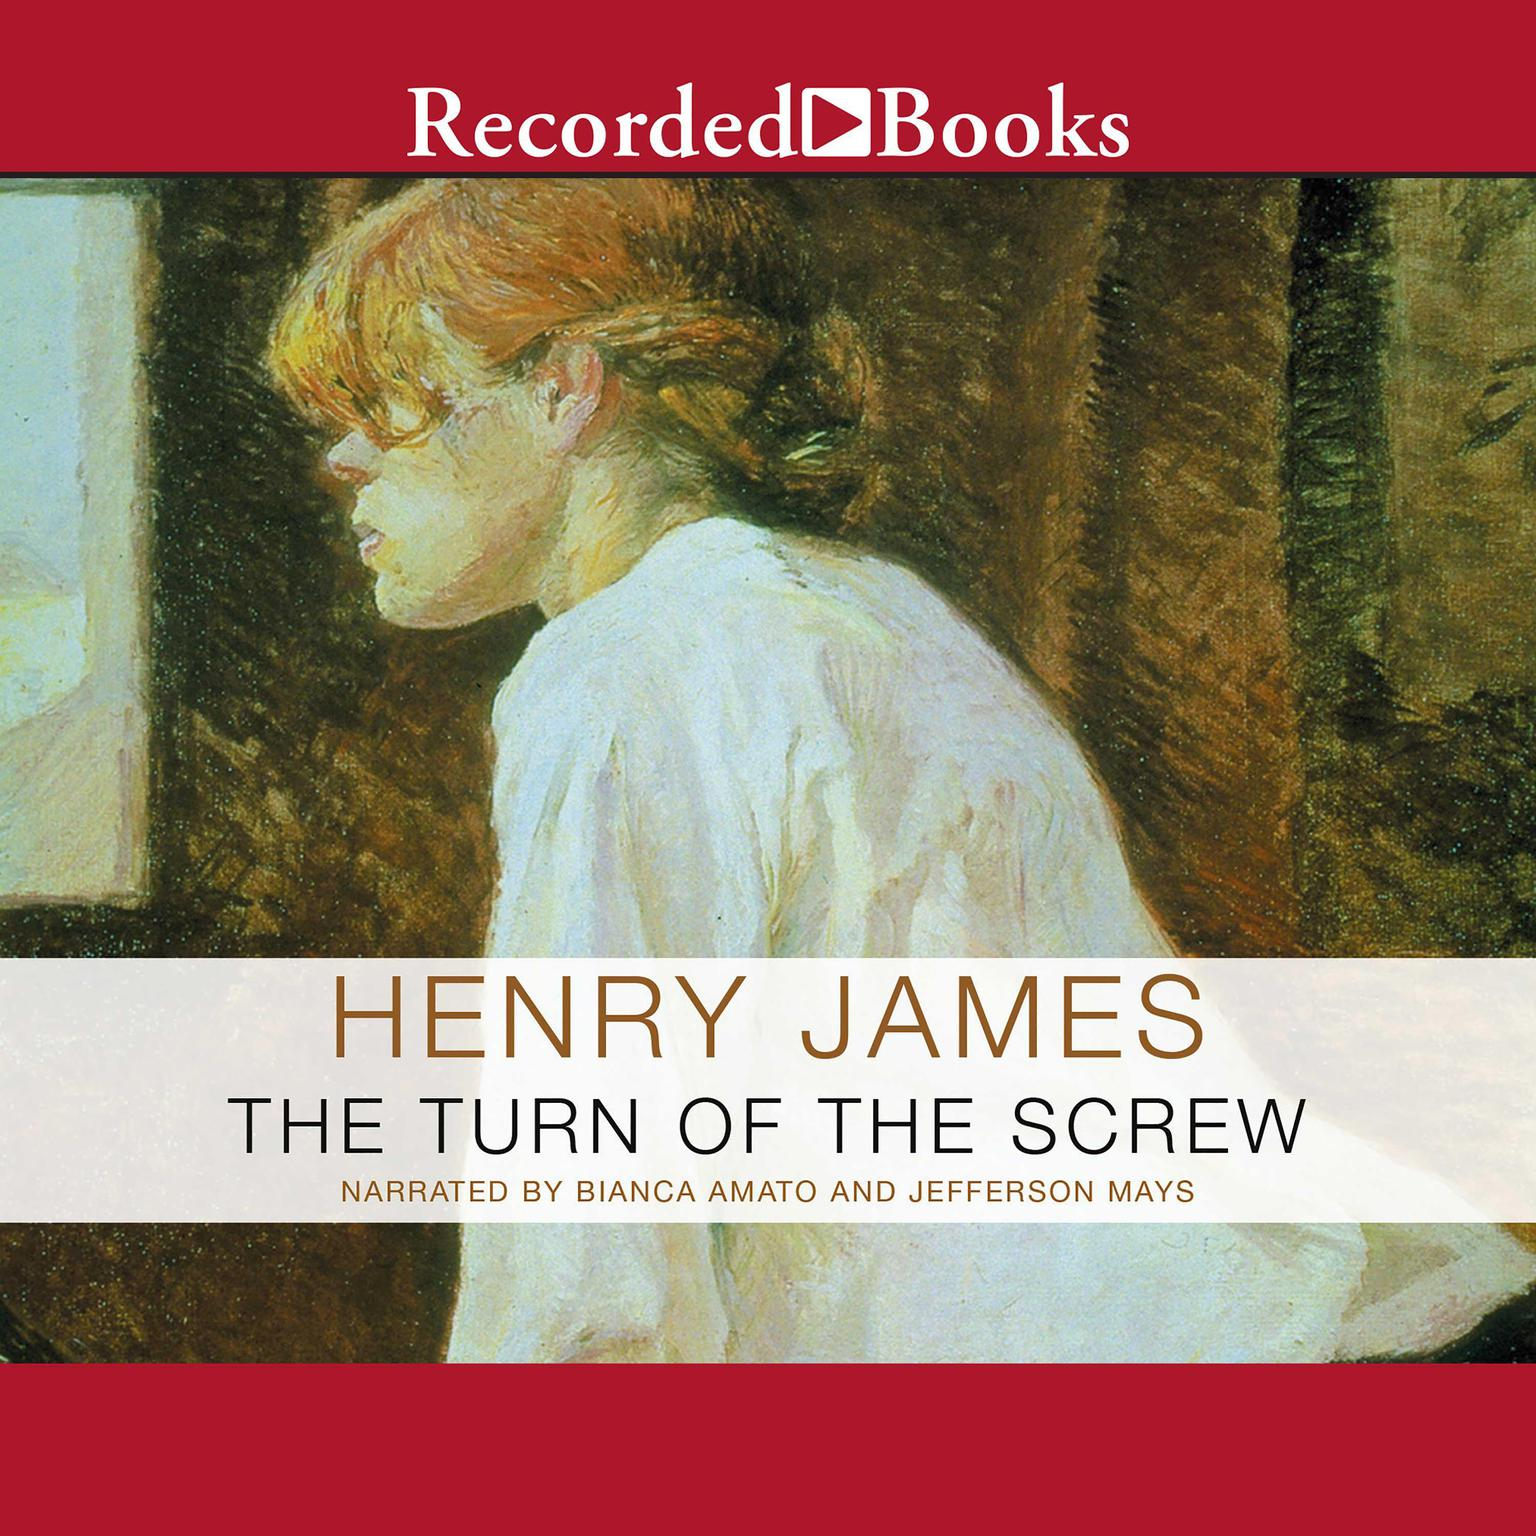 a review of the turn of the screw by henry james The turn of the screw has 621 ratings and 79 reviews paul said: it is the worst thing in the world to leave children with servants maria edgeworth .